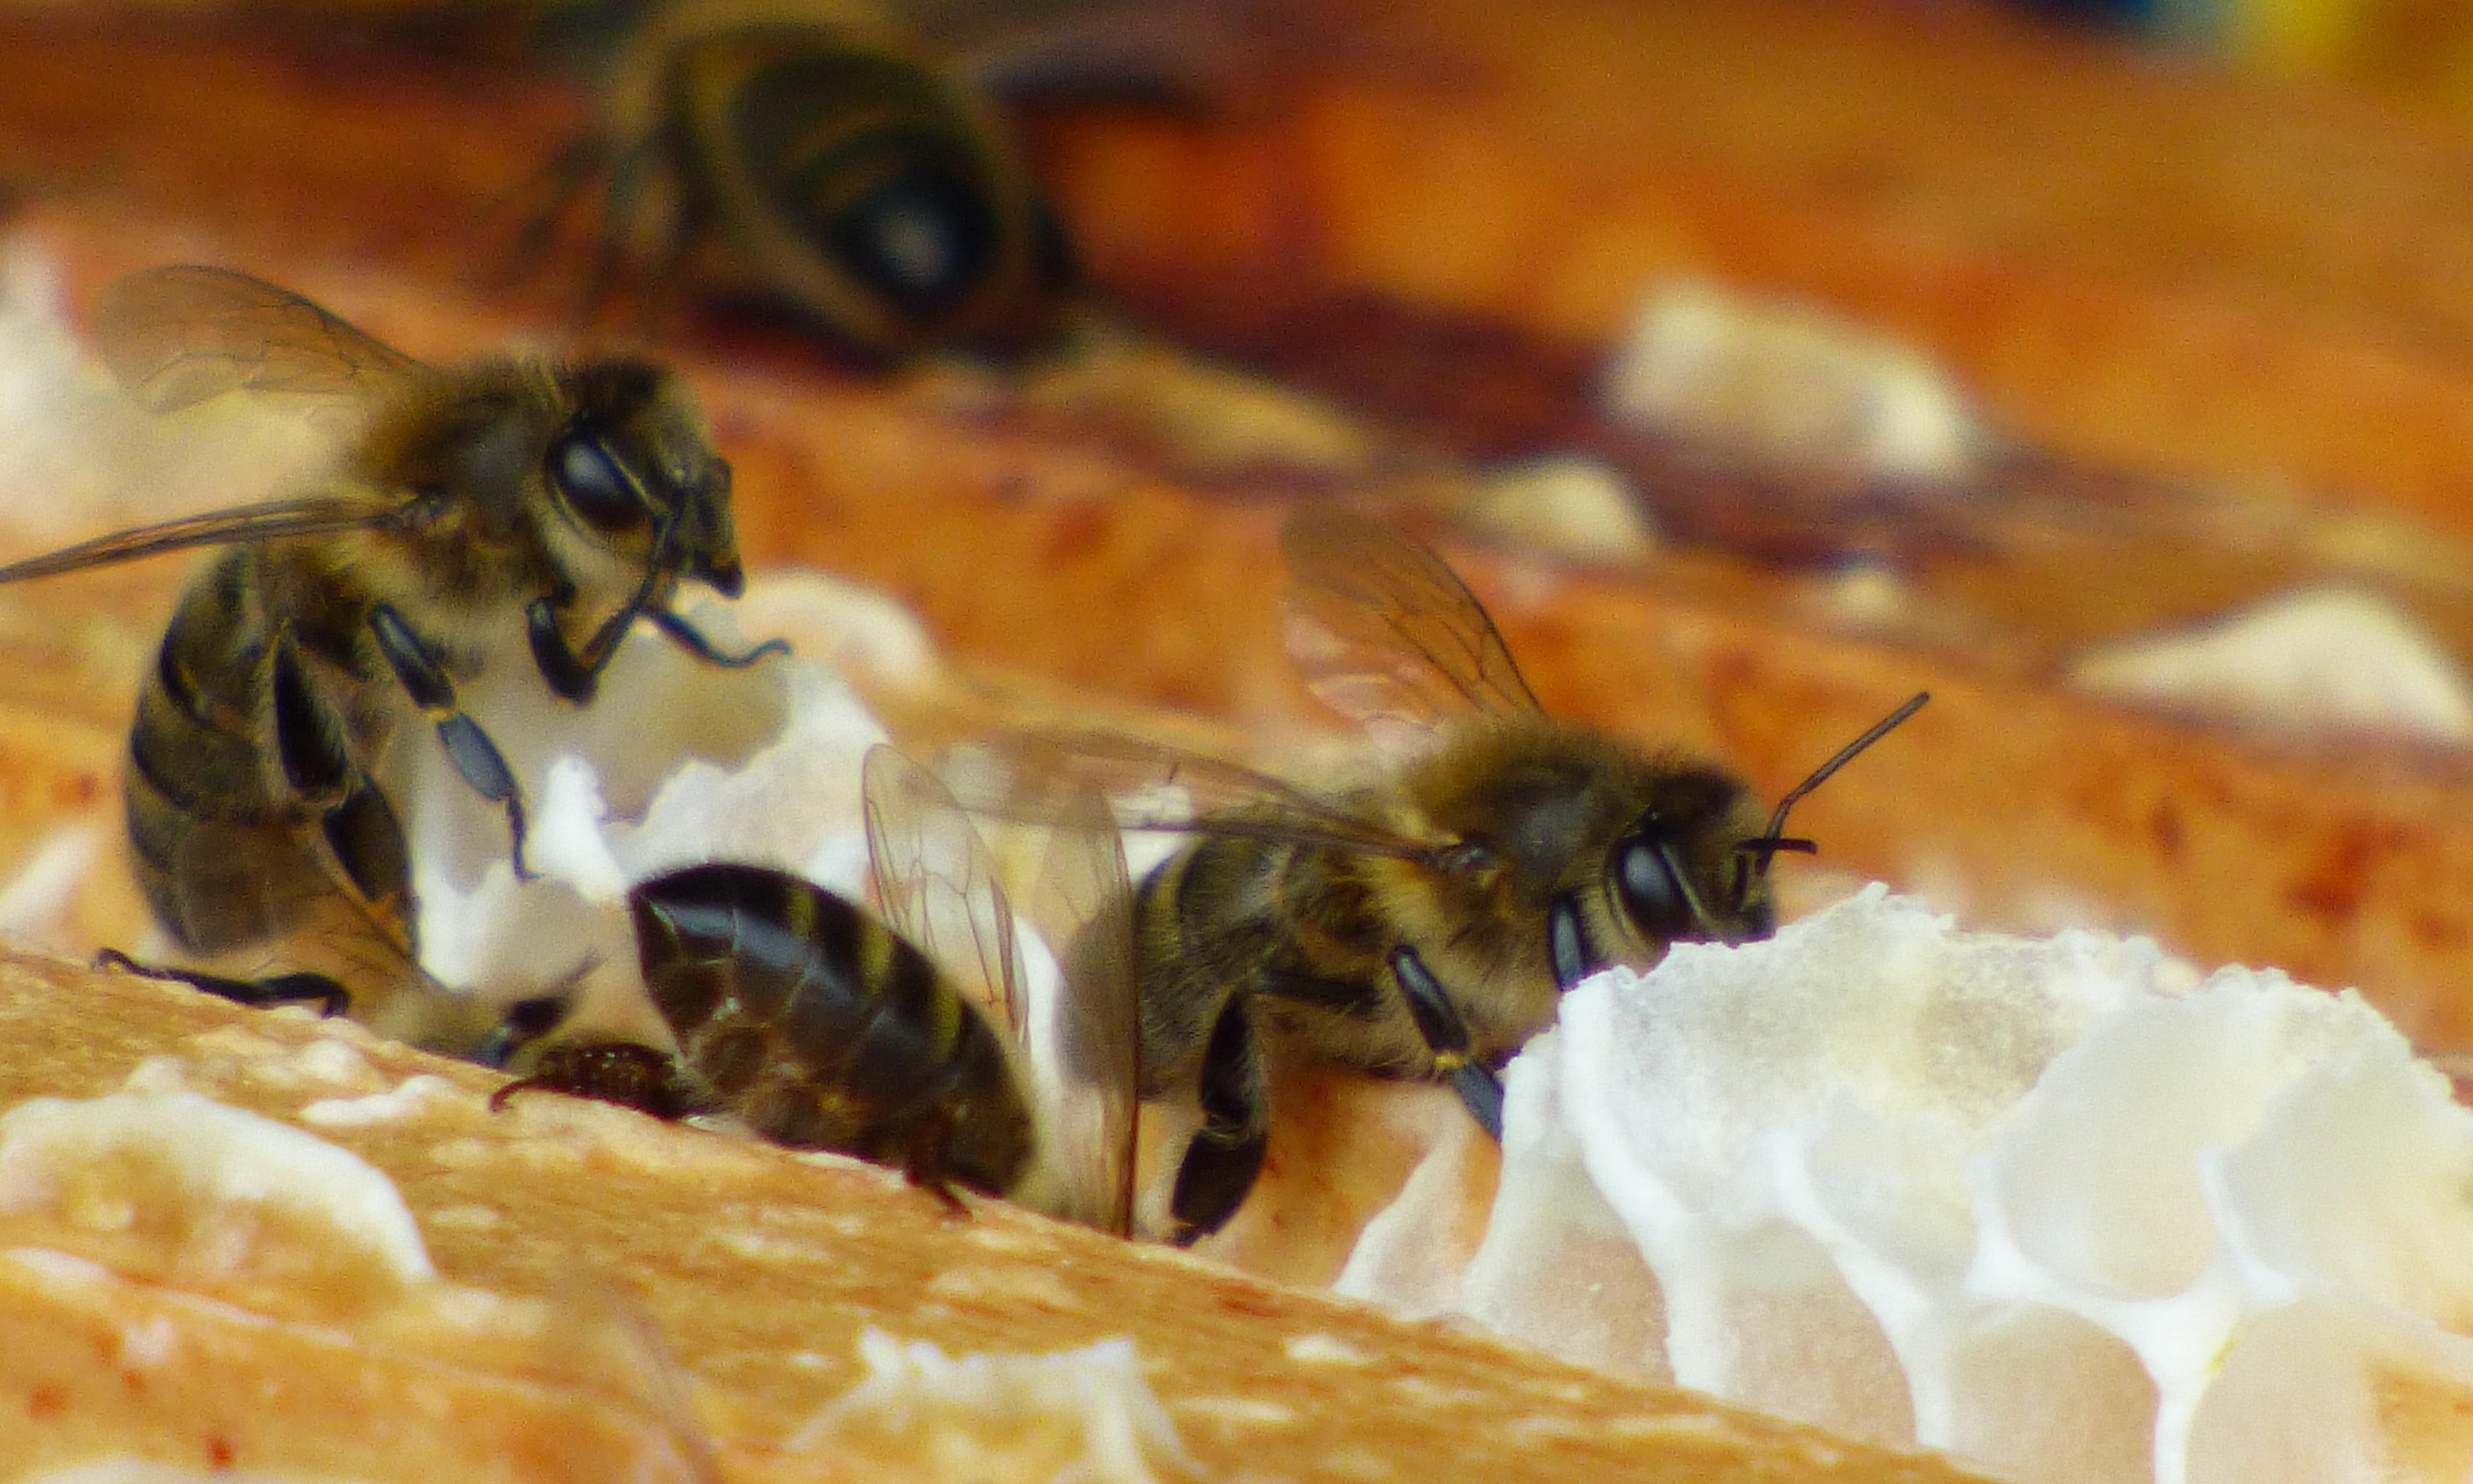 National Beekeeping Centre Wales, Conwy: 'Connect kids with ecology – because the bees need us' – review